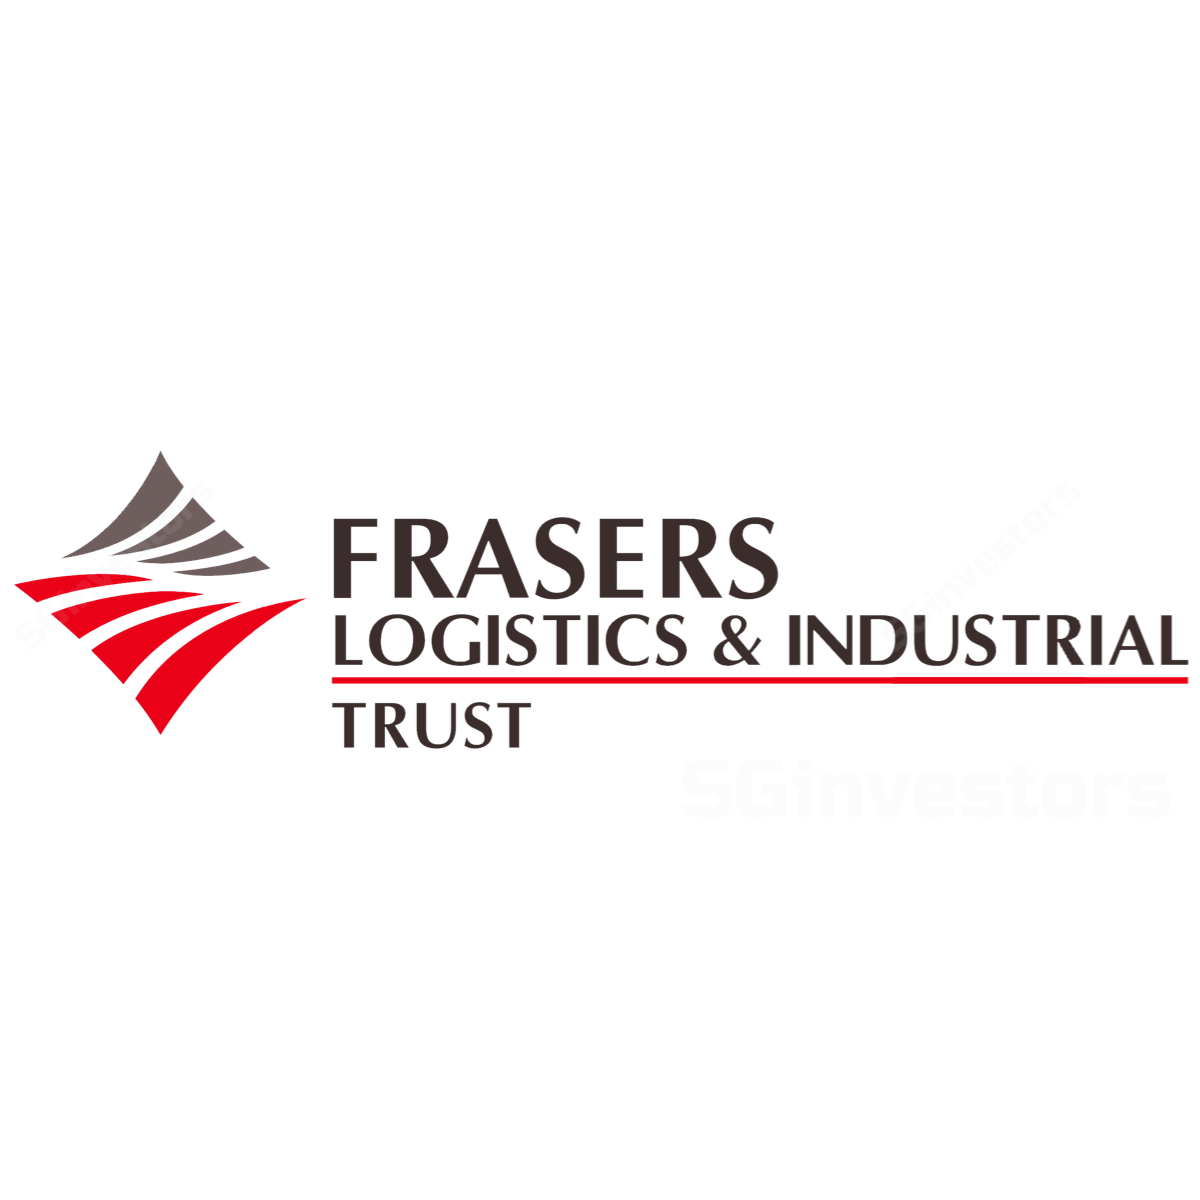 Frasers Logistics & Industrial Trust - CIMB Research 2018-01-26: 1QFY9/18 Two Thumbs Up